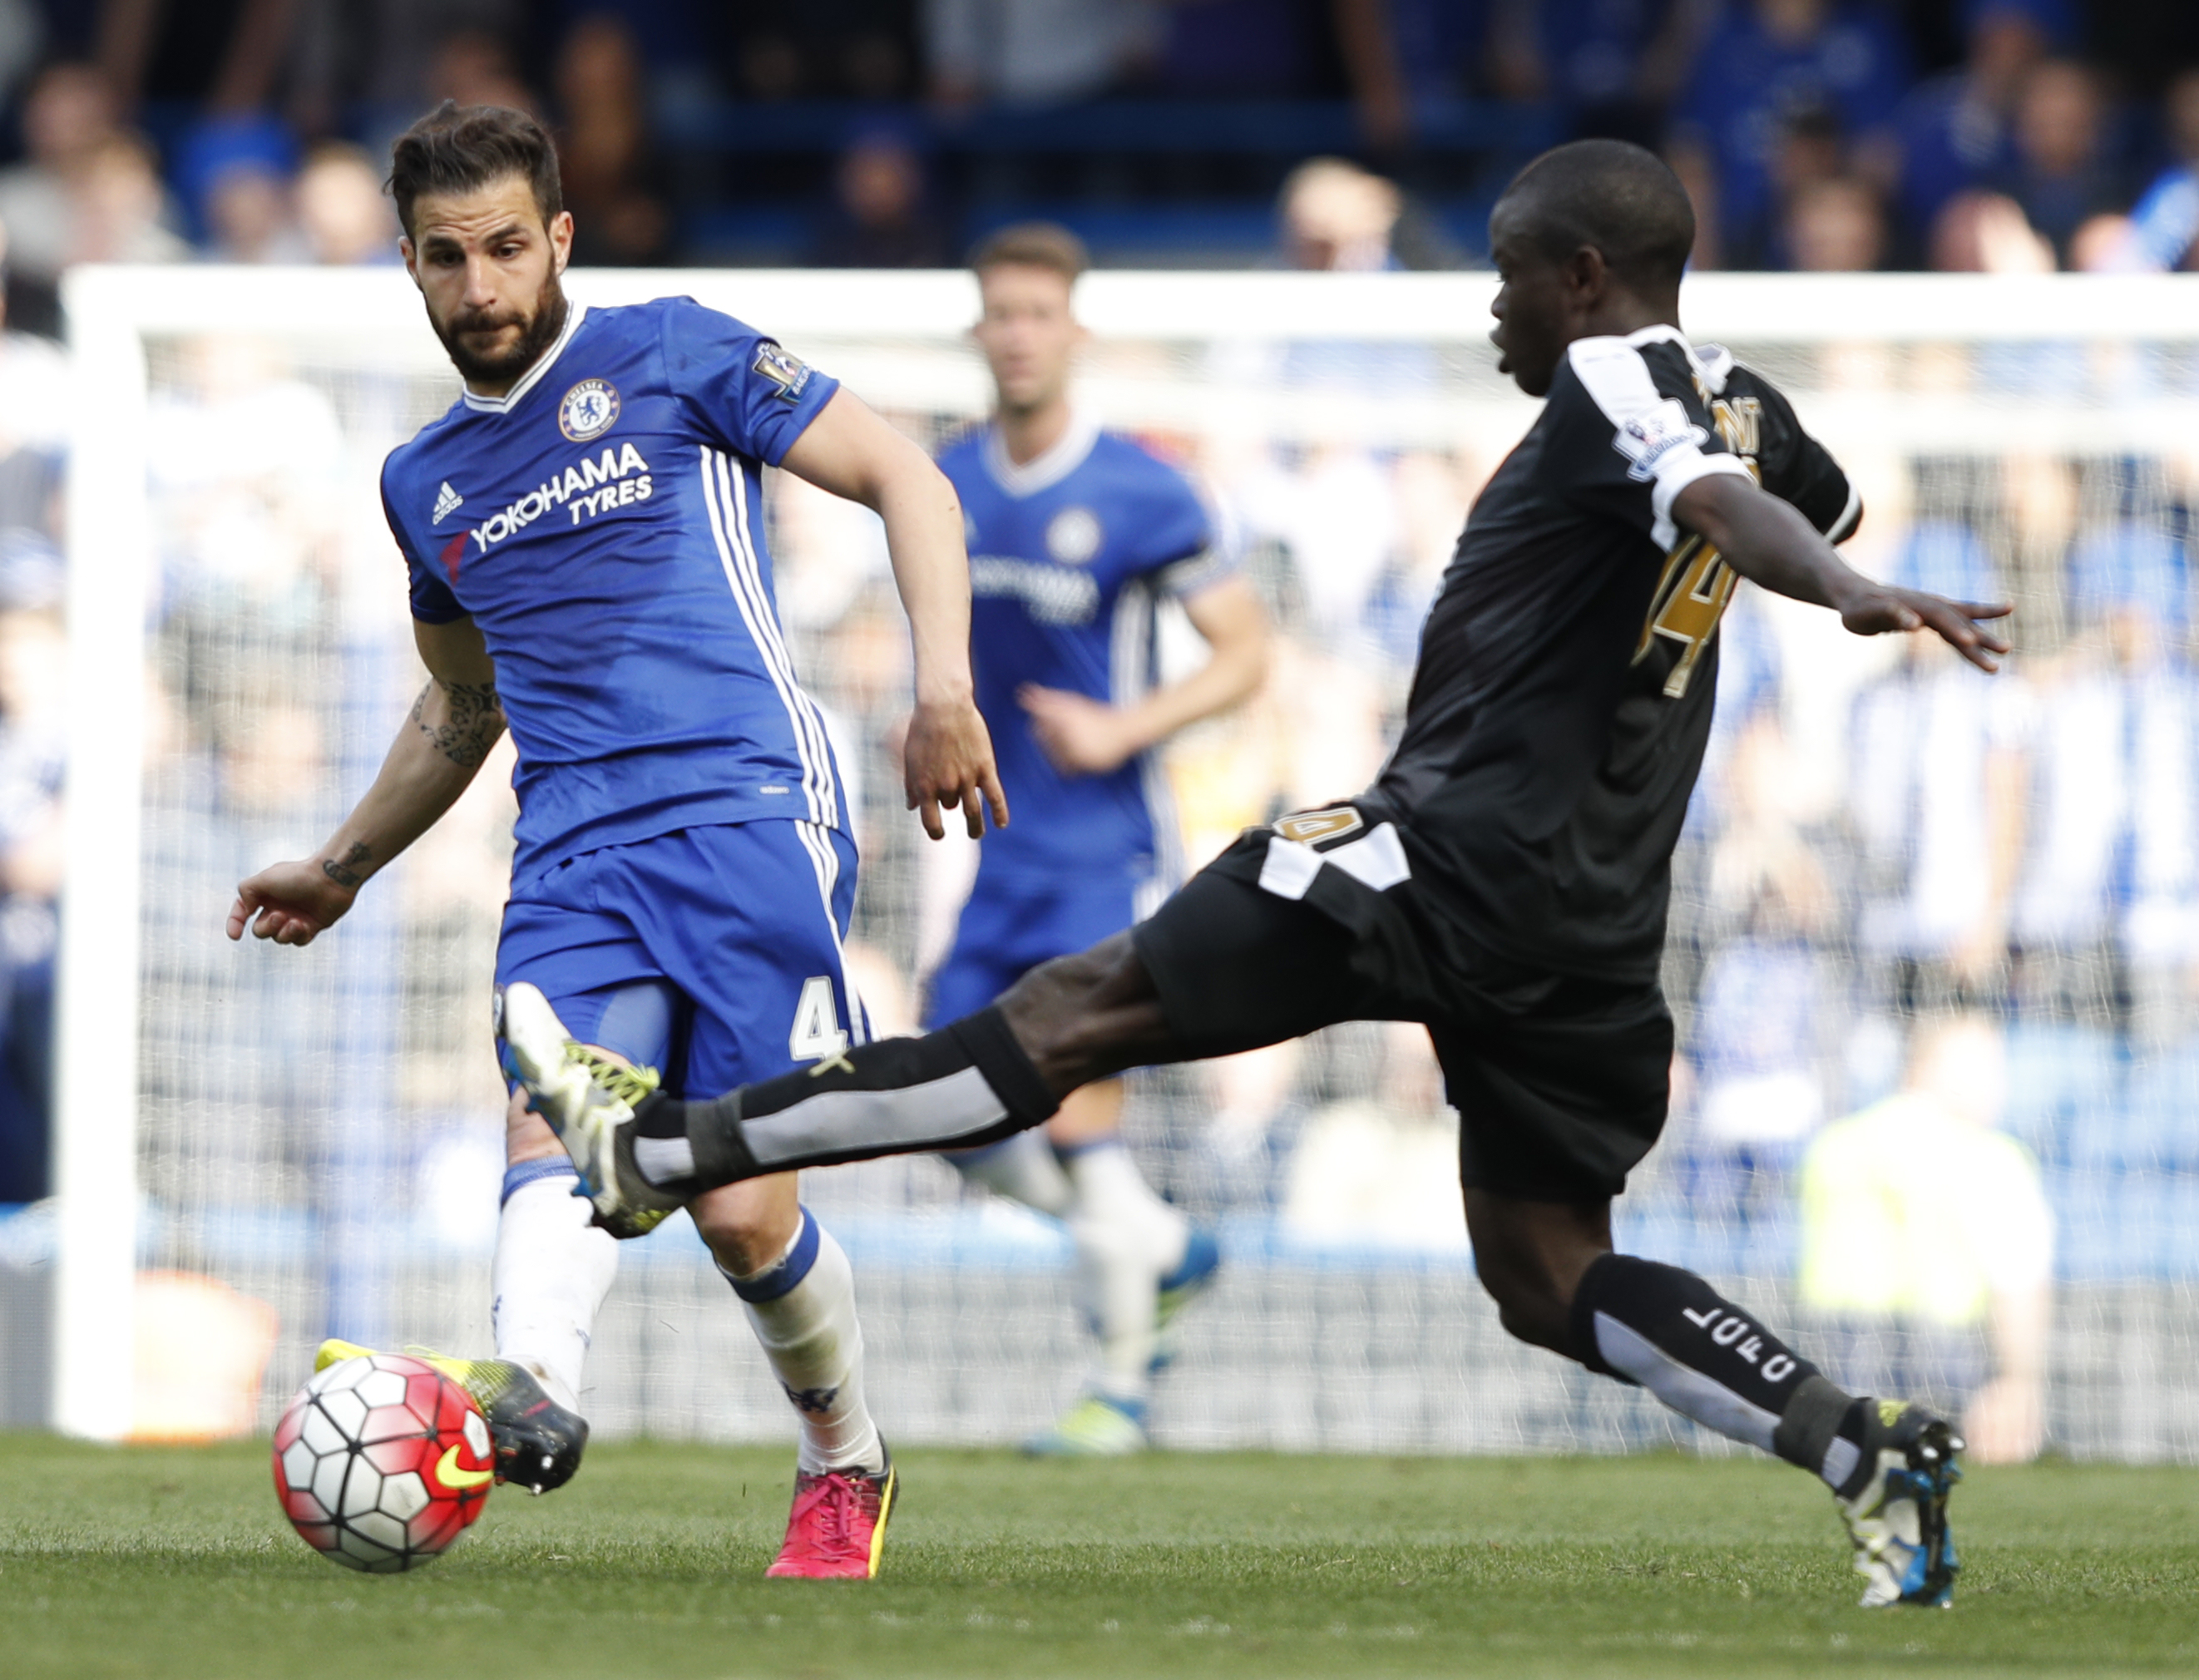 Chelsea's Spanish midfielder Cesc Fabregas (L) vies with Leicester City's French midfielder N'Golo Kante during the English Premier League football match between Chelsea and Leicester City at Stamford Bridge in London on May 15, 2016. / AFP / ADRIAN DENNIS / RESTRICTED TO EDITORIAL USE. No use with unauthorized audio, video, data, fixture lists, club/league logos or 'live' services. Online in-match use limited to 75 images, no video emulation. No use in betting, games or single club/league/player publications. / (Photo credit should read ADRIAN DENNIS/AFP/Getty Images)